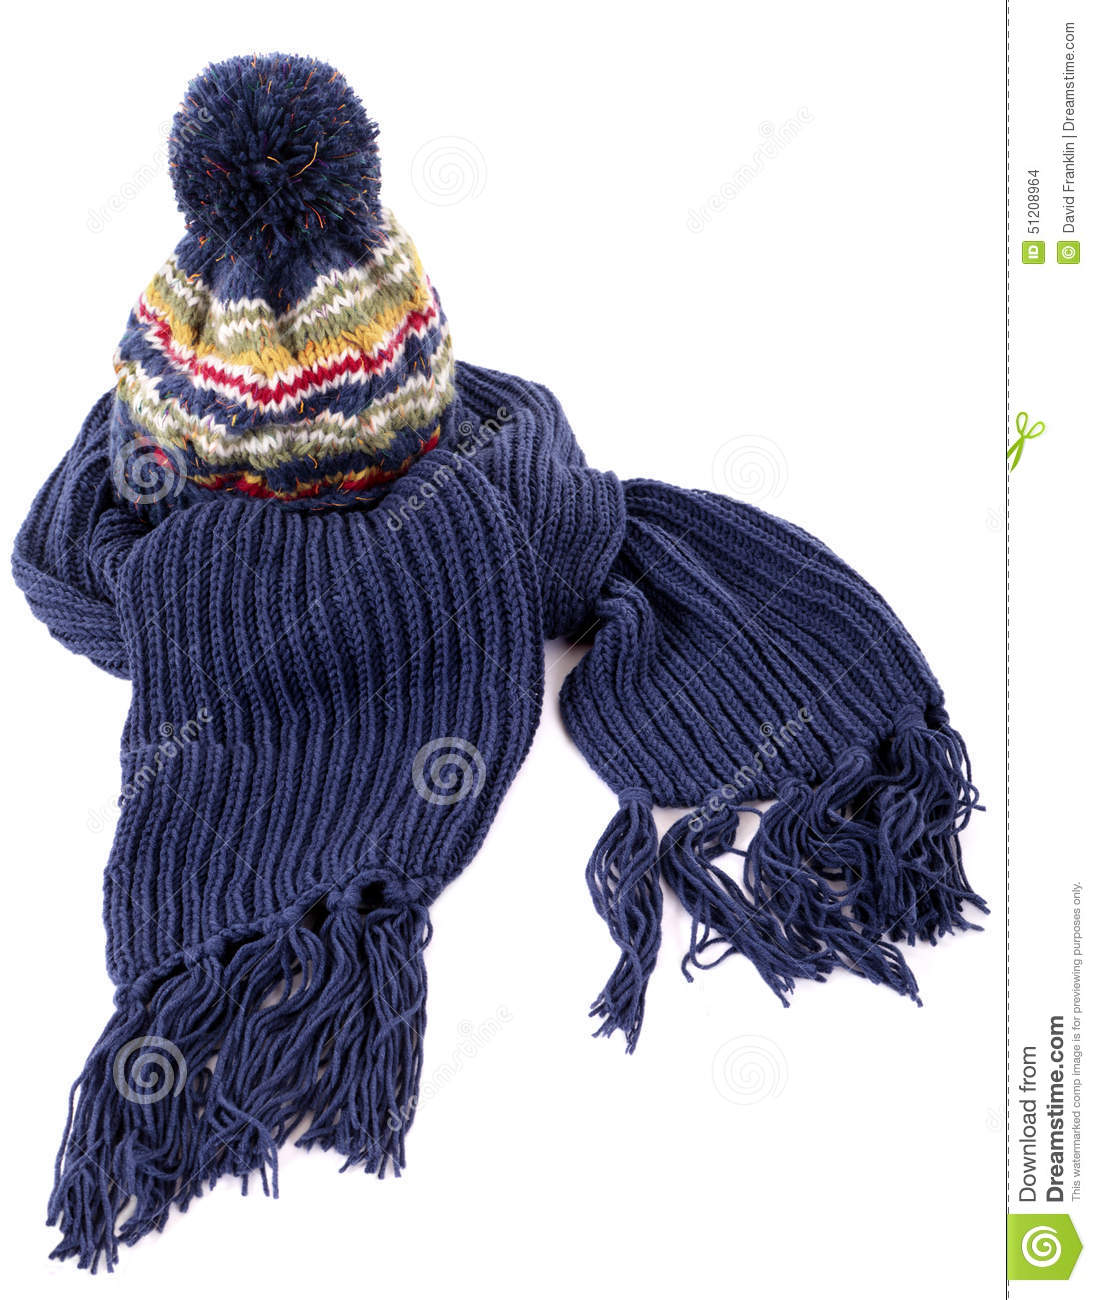 Blue winter scarf with knit hat isolated on white background